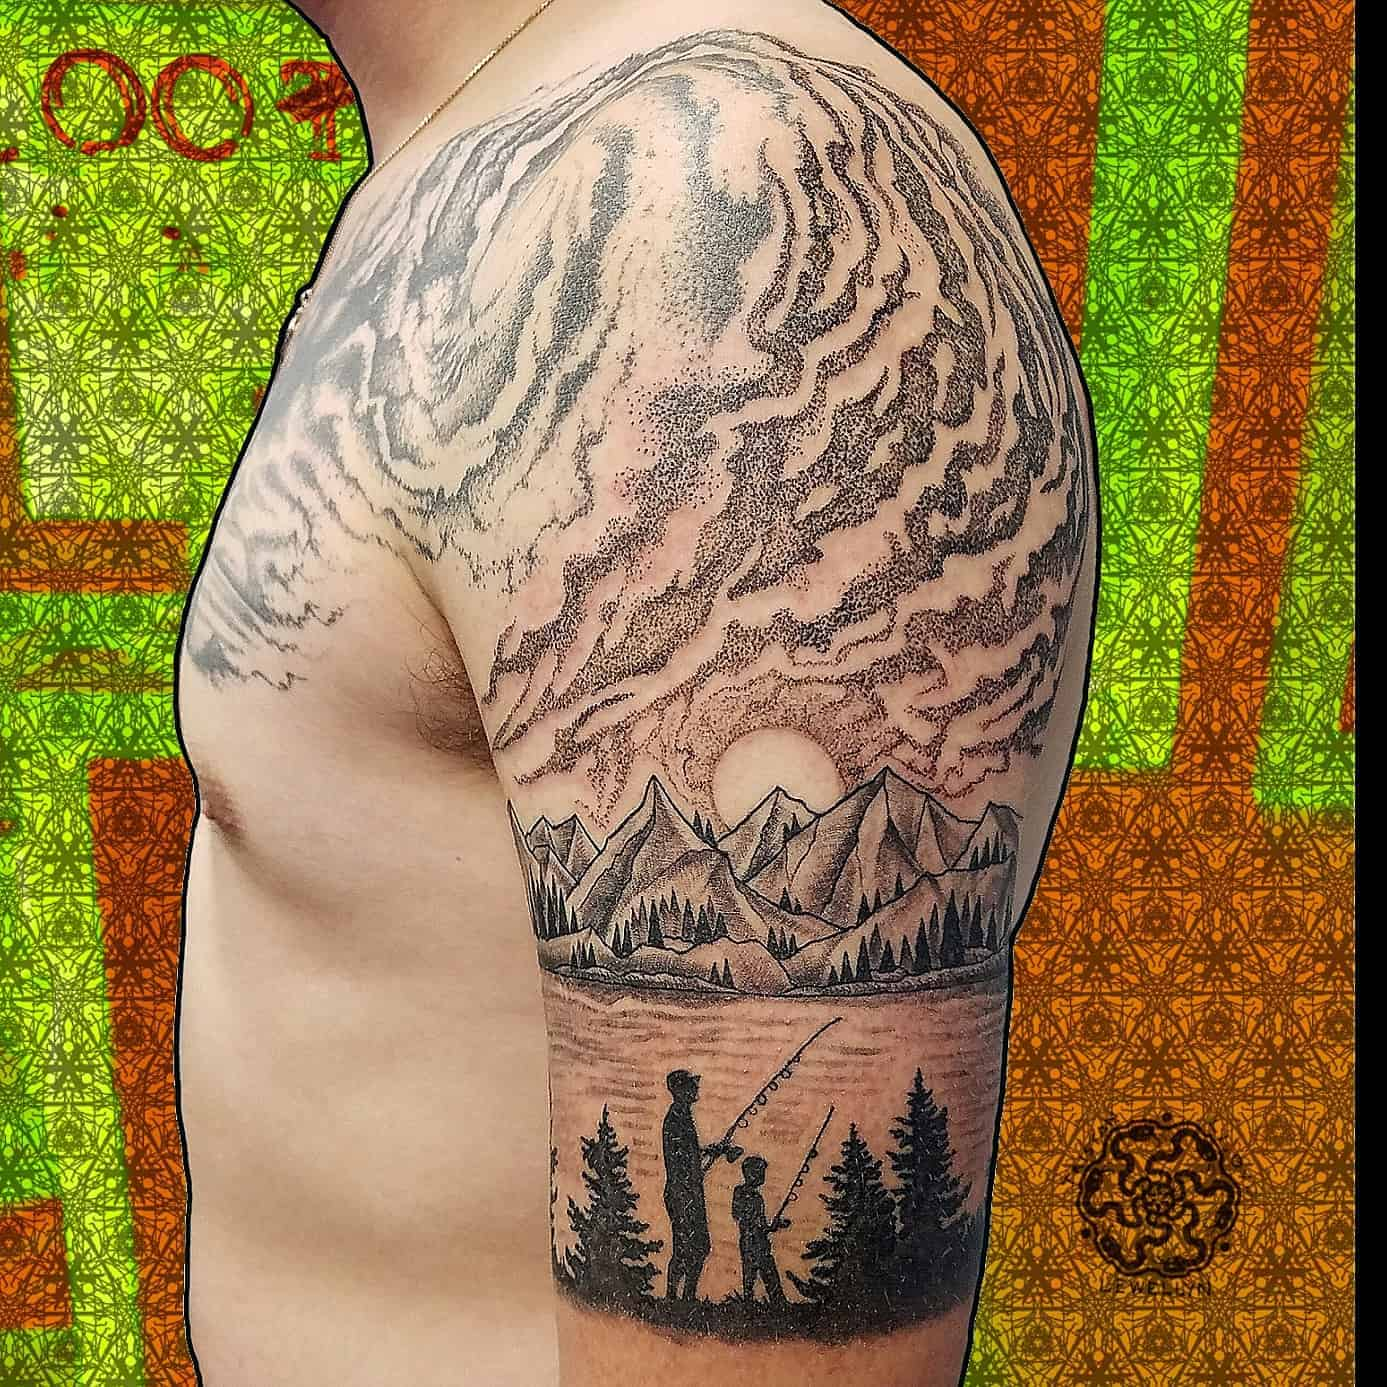 dotwork and blackwork tattoo of landscape and sky